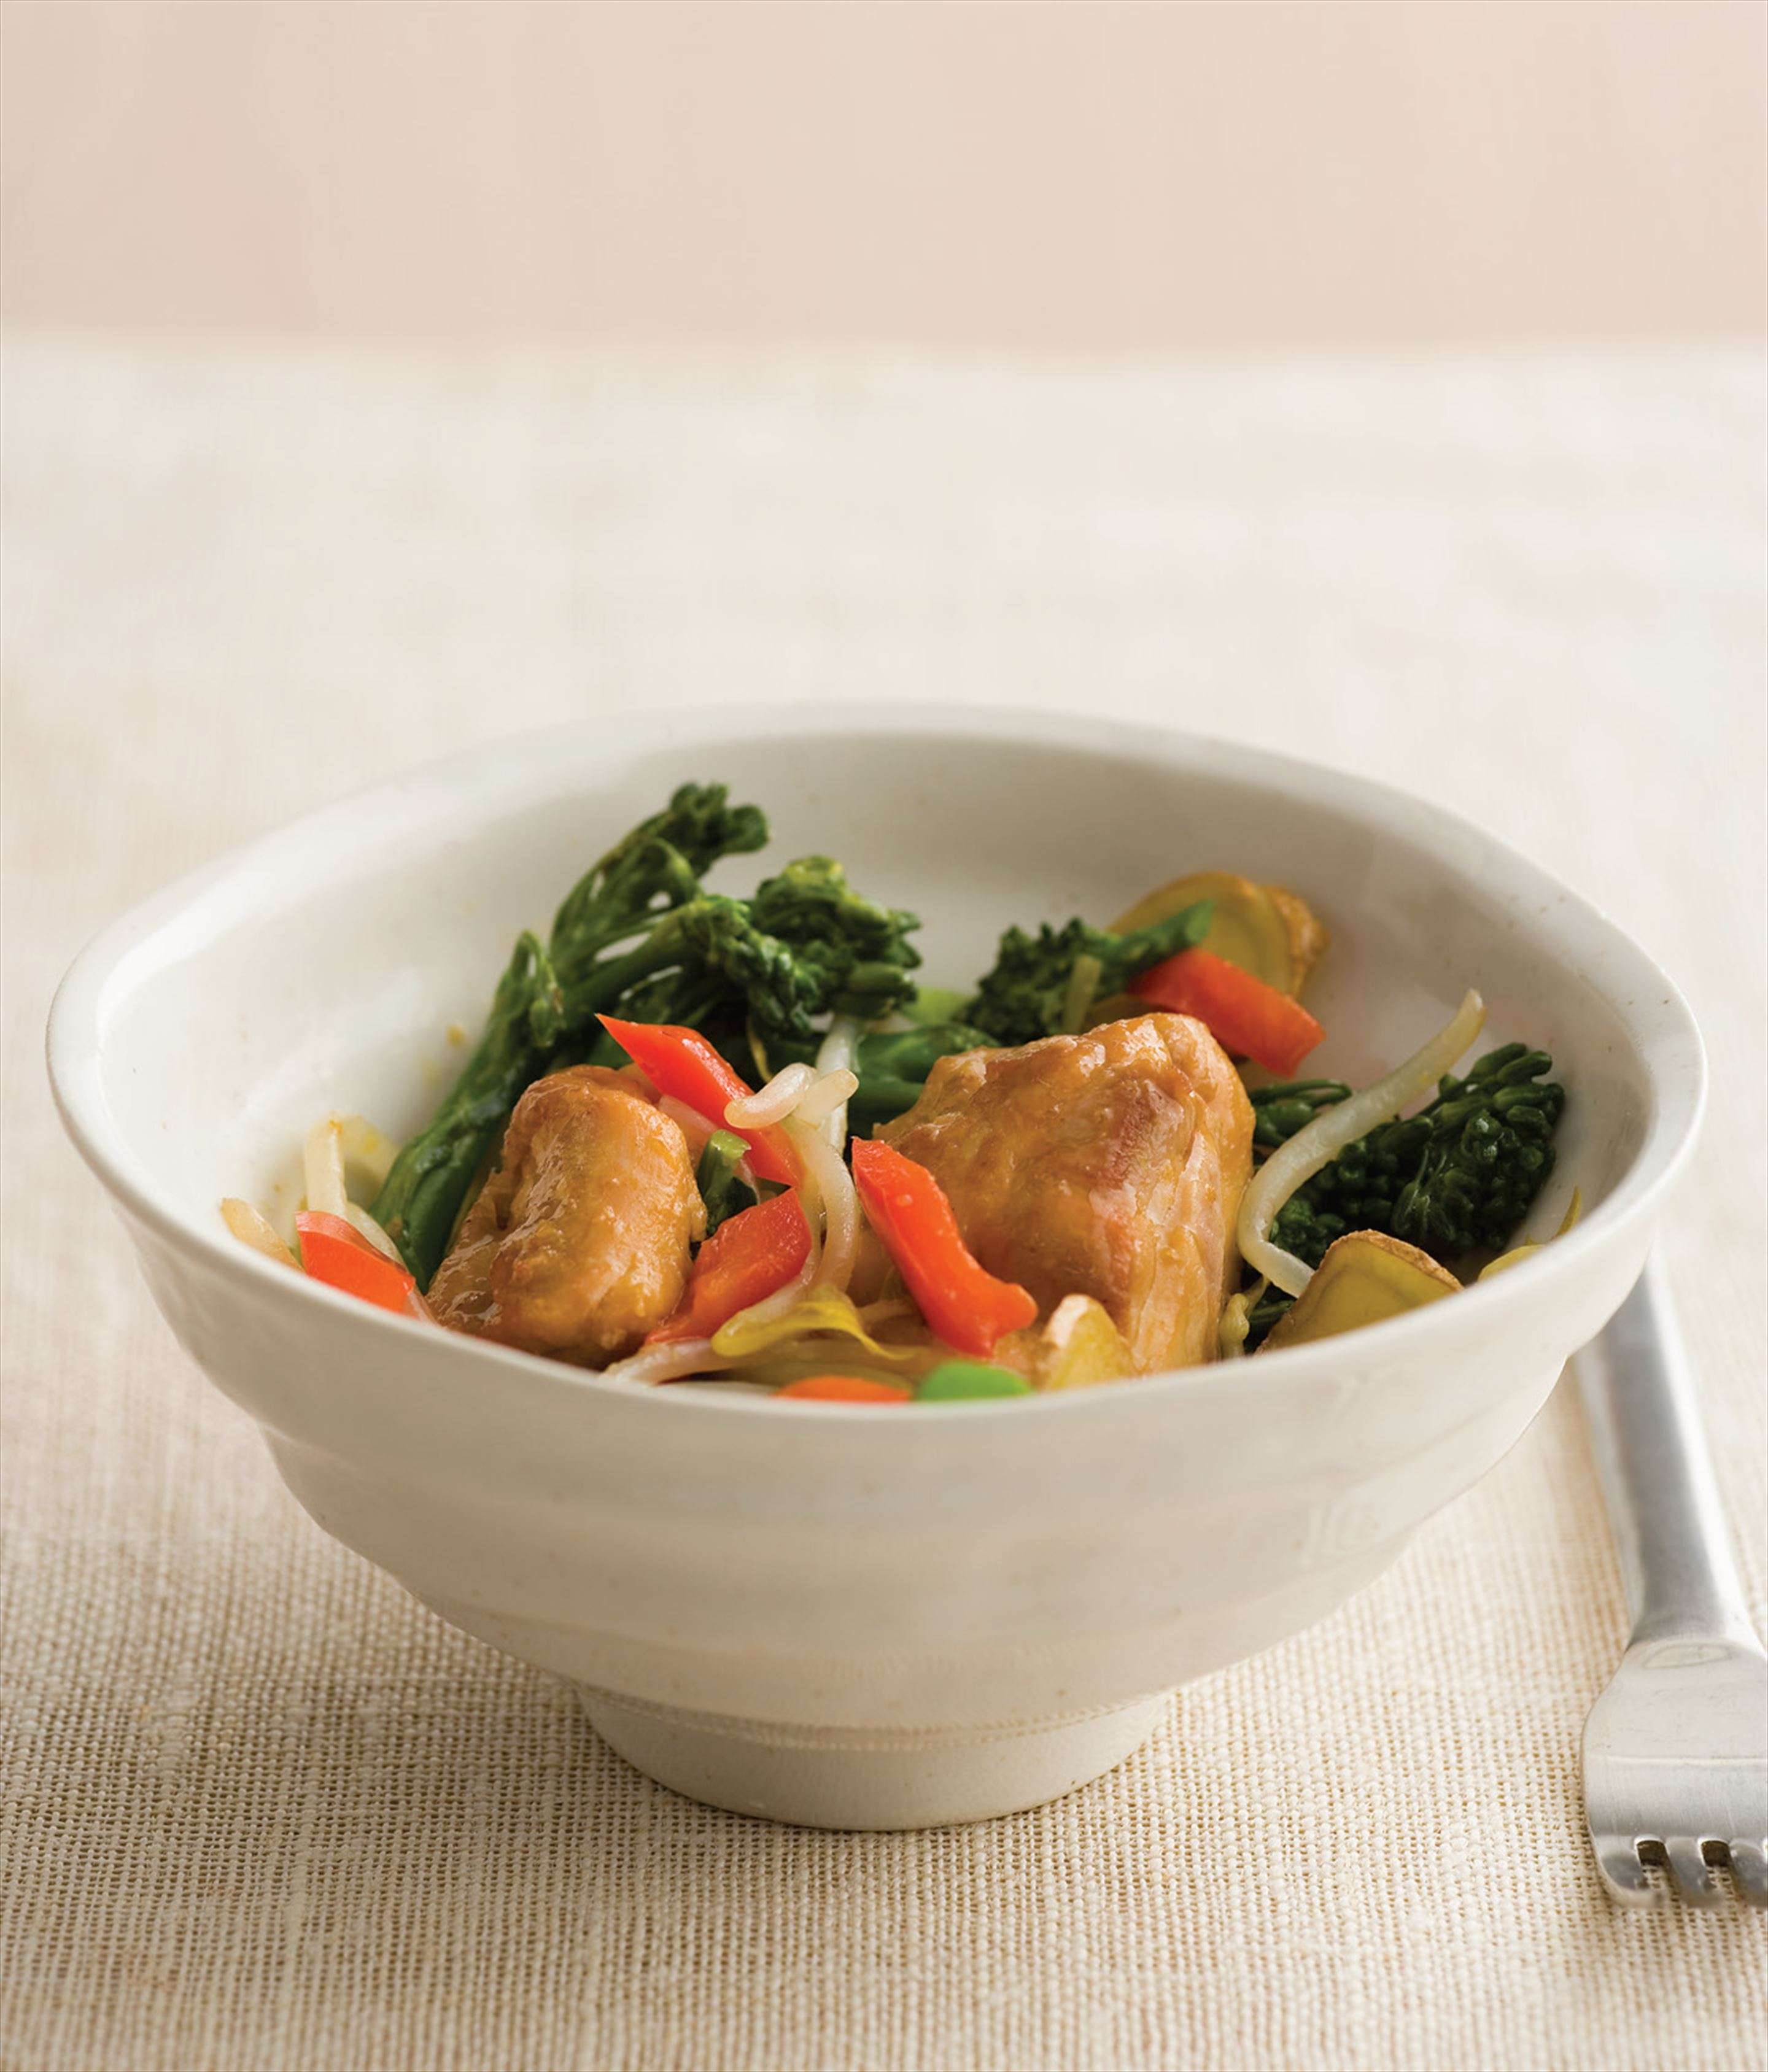 Stir-fried chicken thighs with broccolini